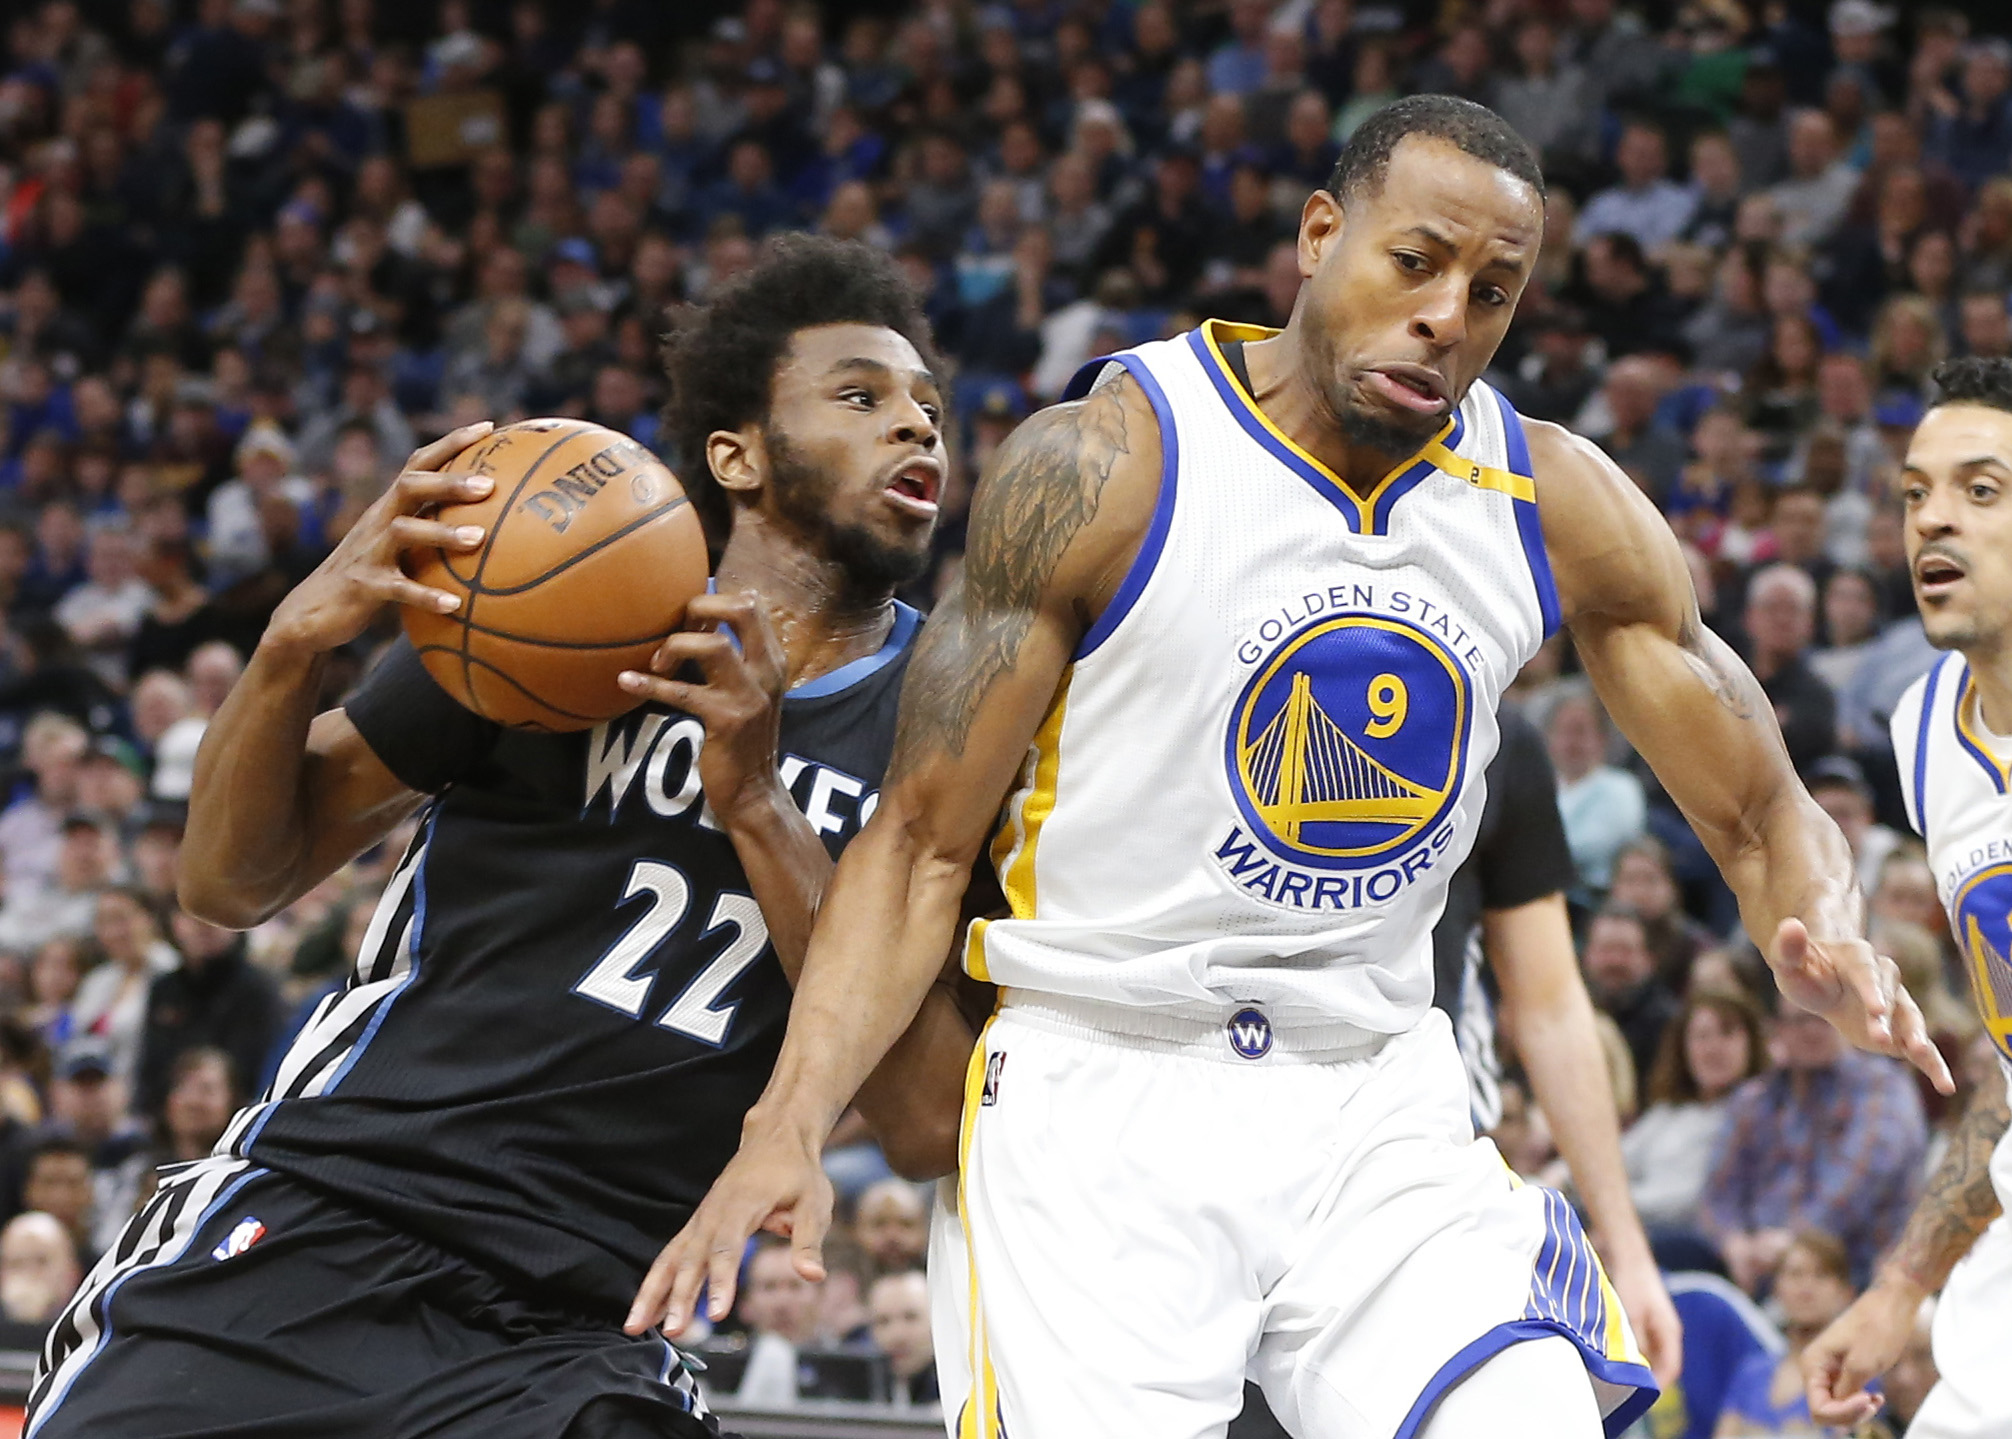 Minnesota Timberwolves' Andrew Wiggins, left, bumps into Golden State Warriors' Andre Iguodala as he drives during the first half of an NBA basketball game Friday, March 10, 2017, in Minneapolis.AP NEWSWIRE